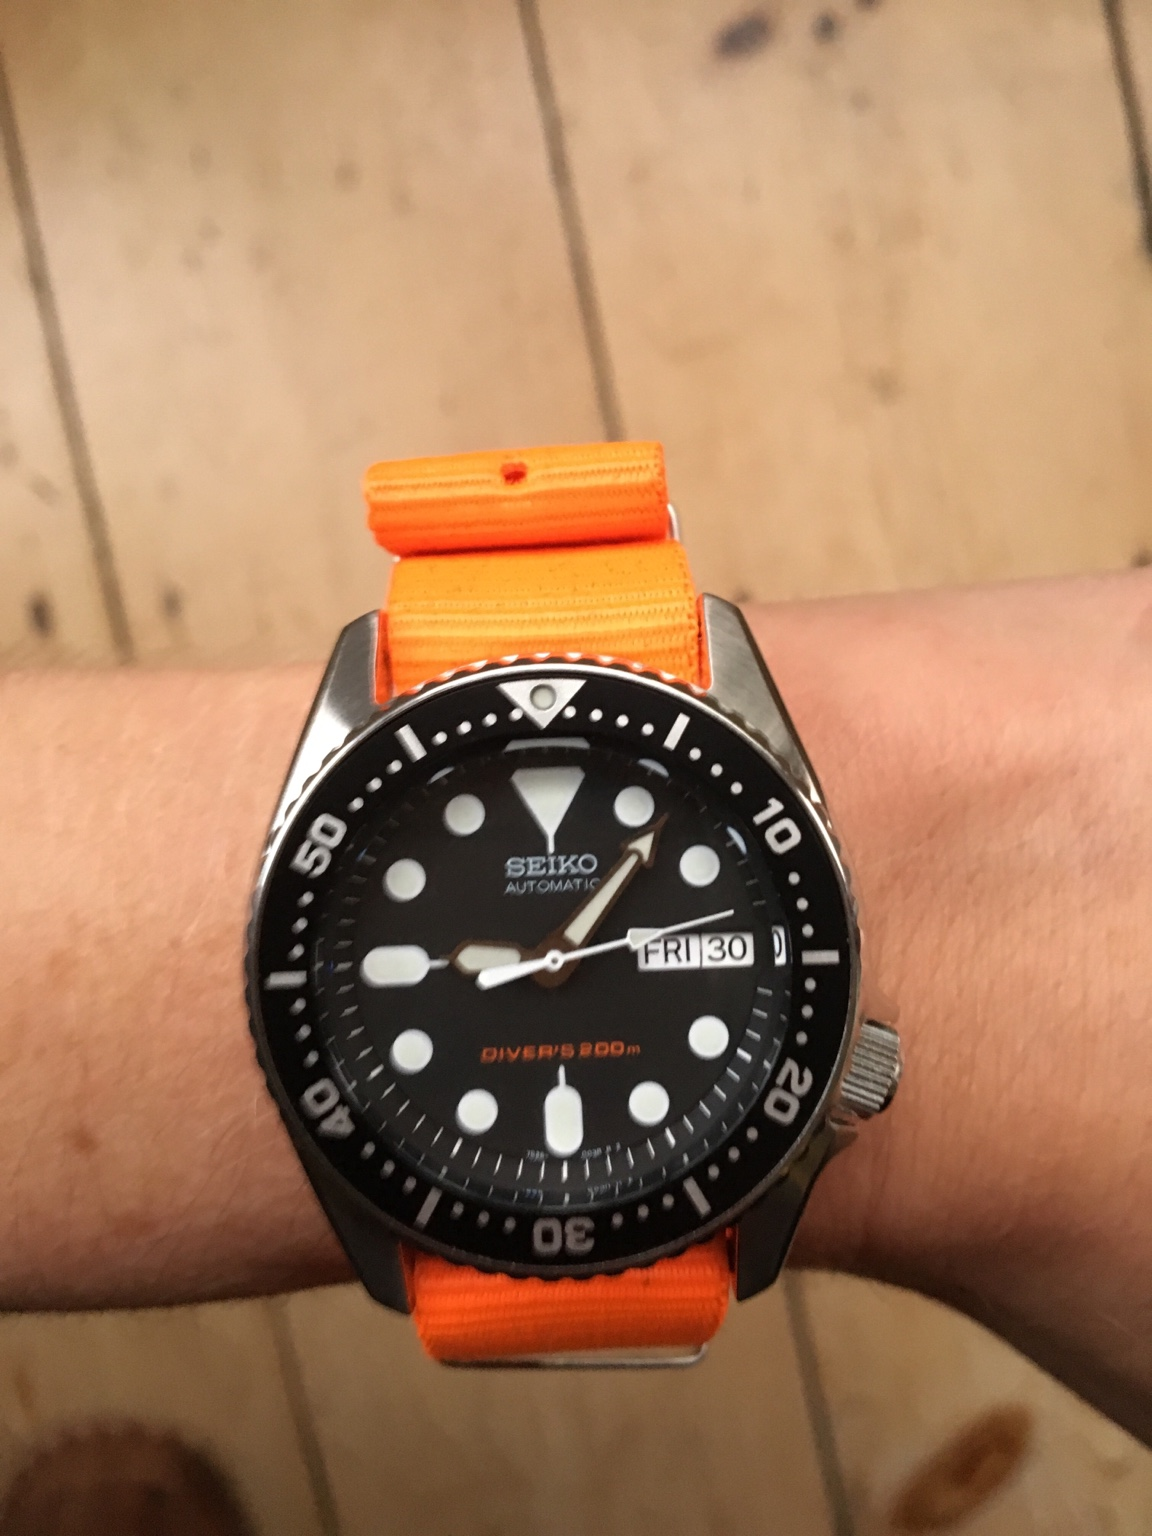 great by prices place a showthread good divers have skx rolex purchase been anyone luck me forums with very consistent regulated watches seiko from has everyone delivery is fast and creation to running